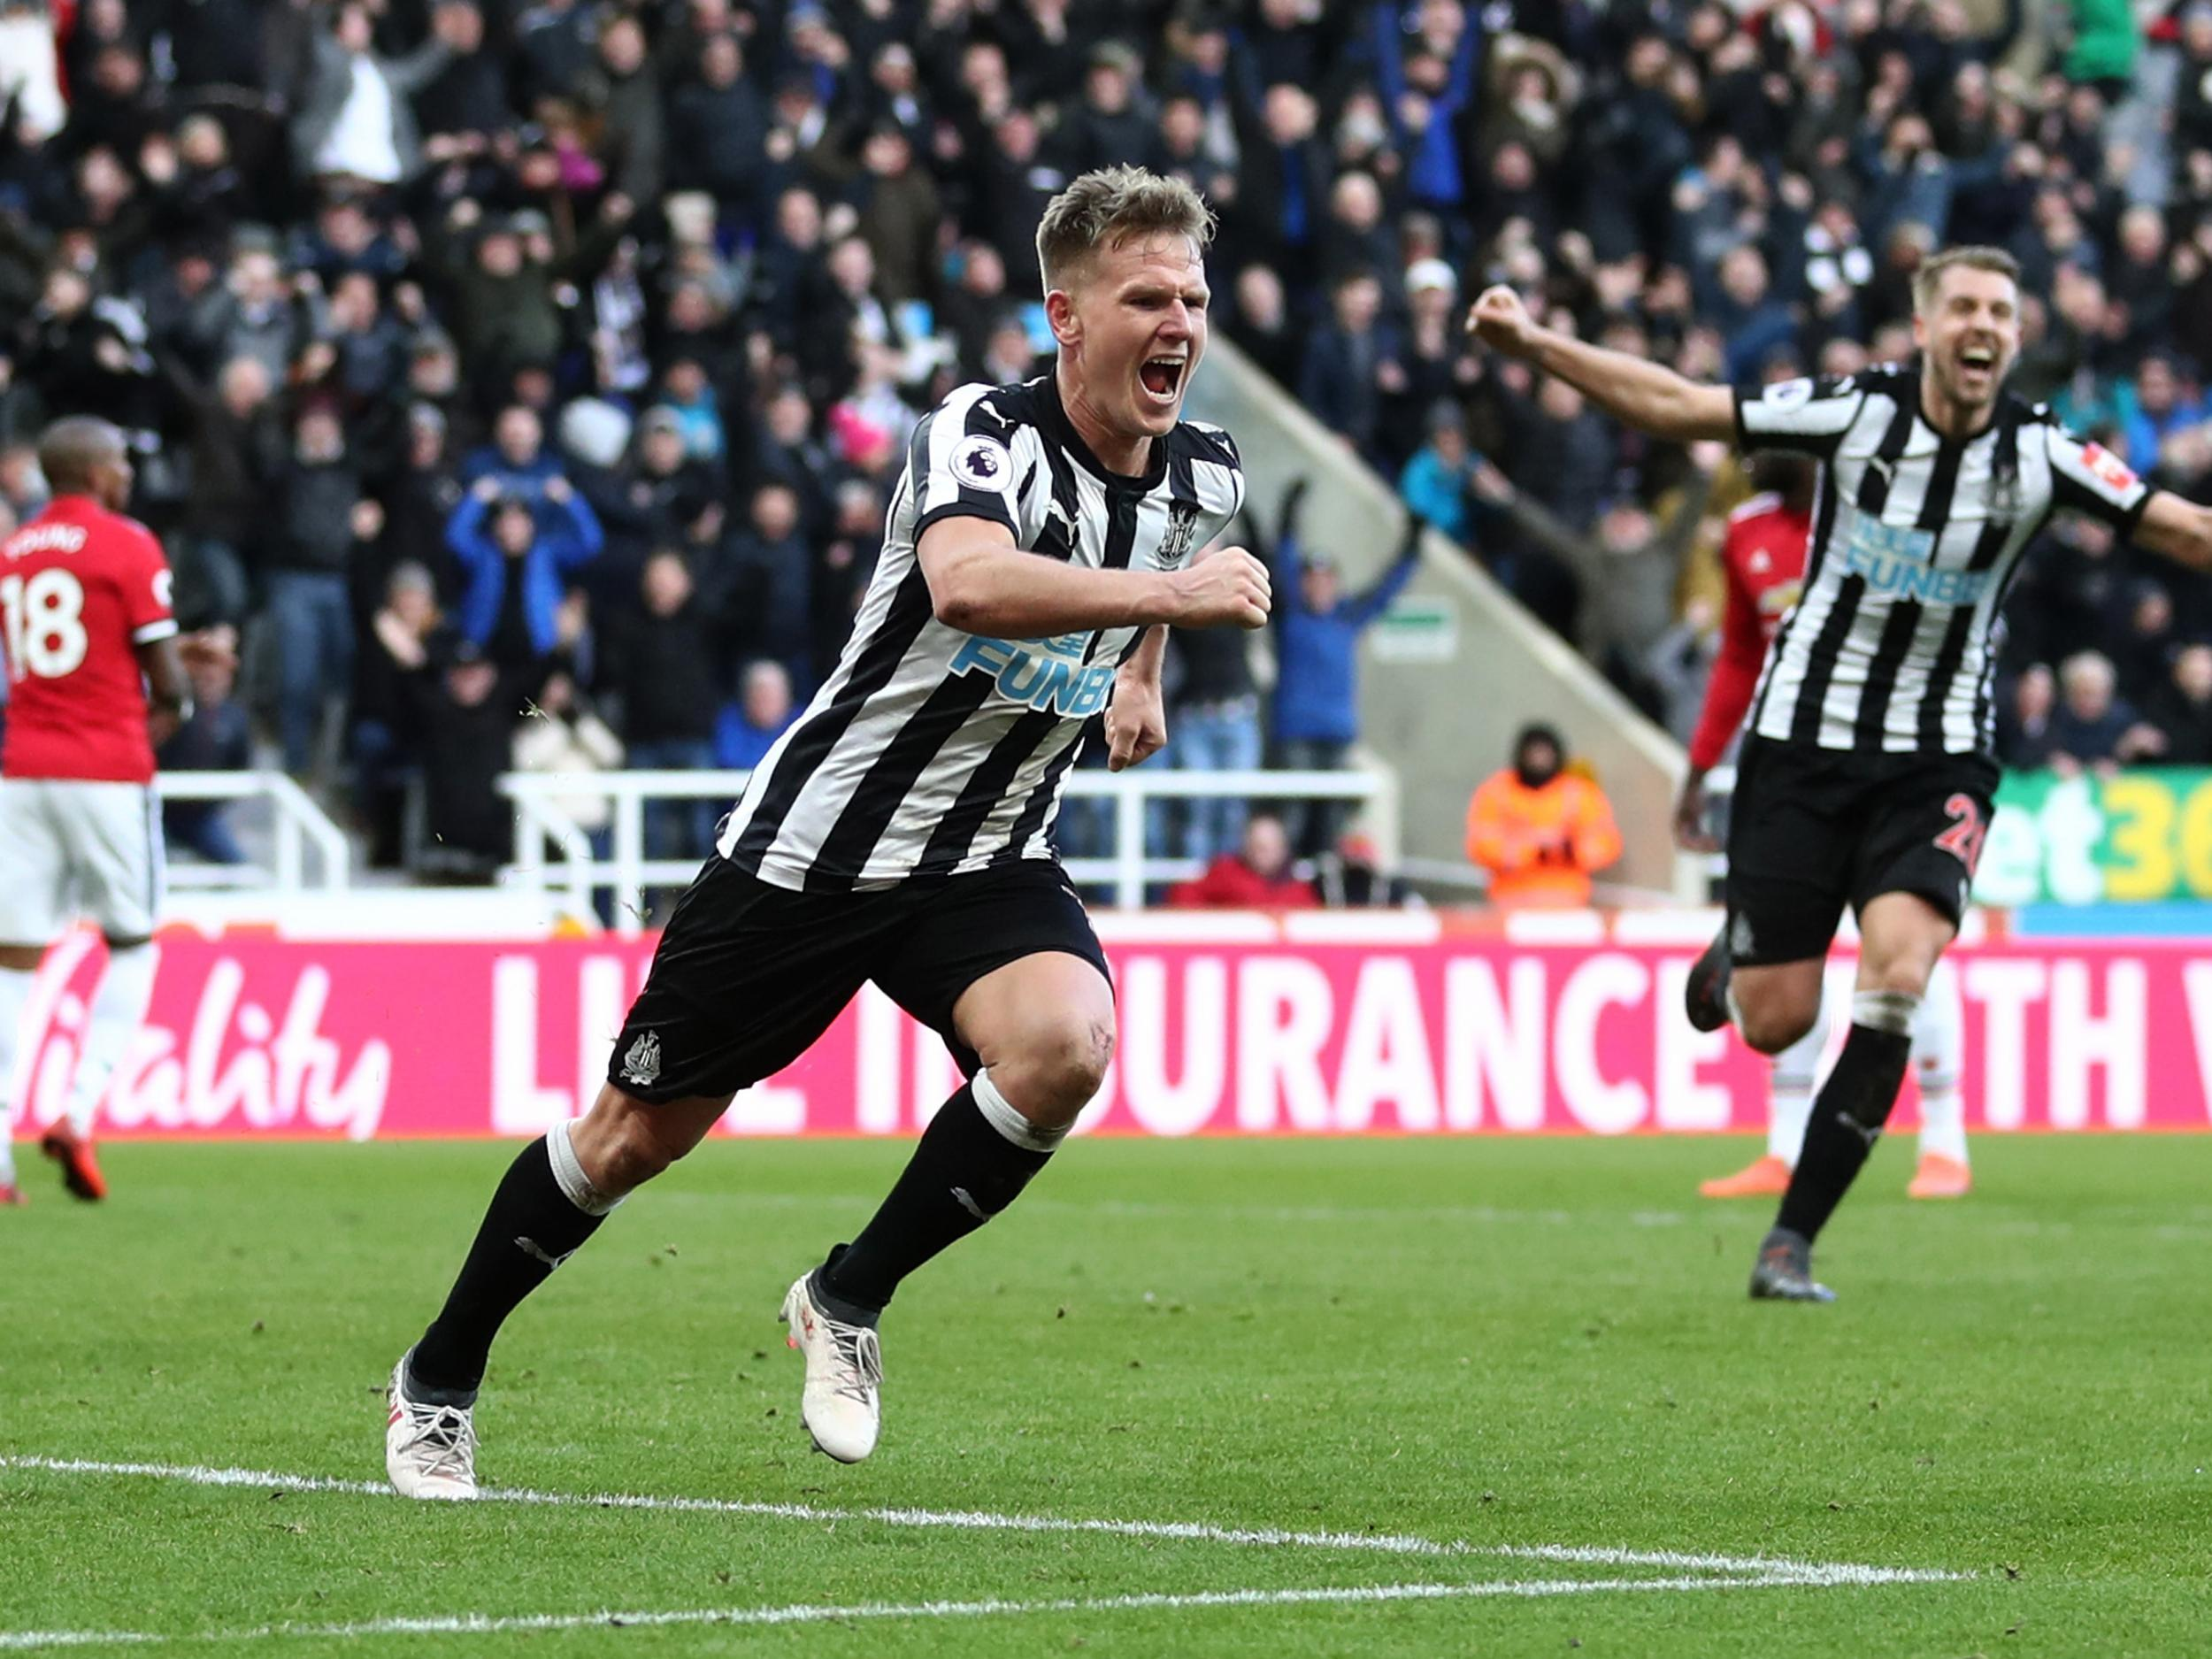 Newcastle United blunt Manchester United's attack to earn three crucial points in fight against relegation